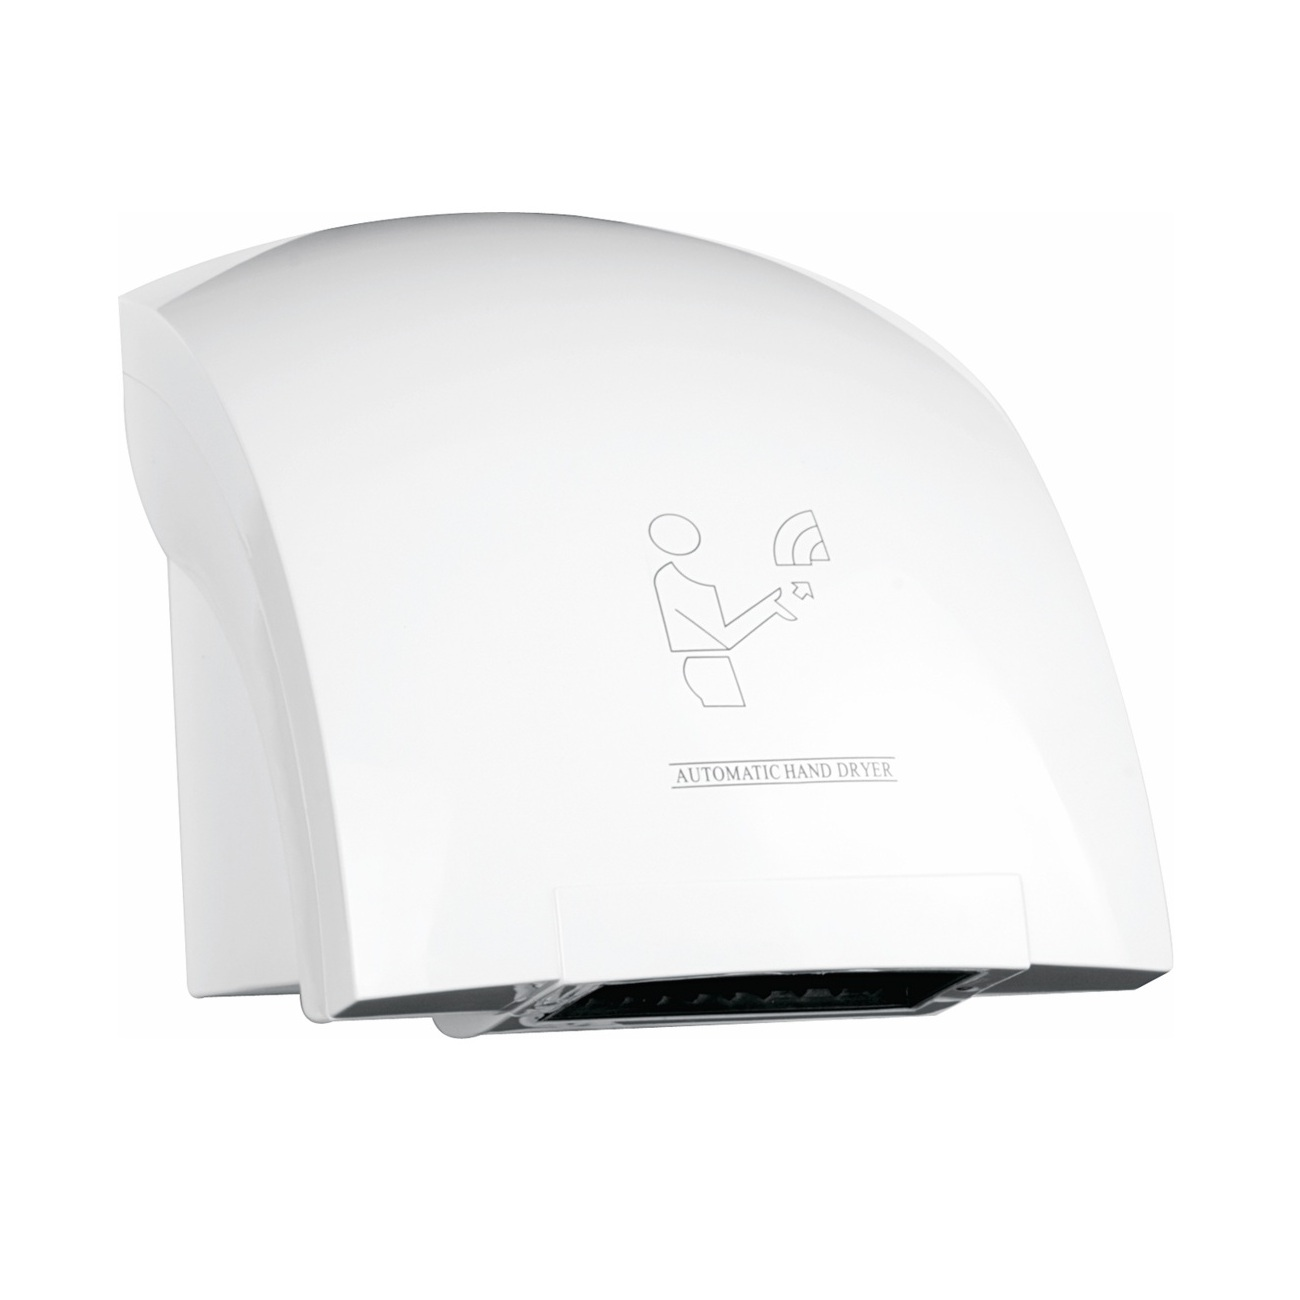 1800w Plastic Hand Dryer